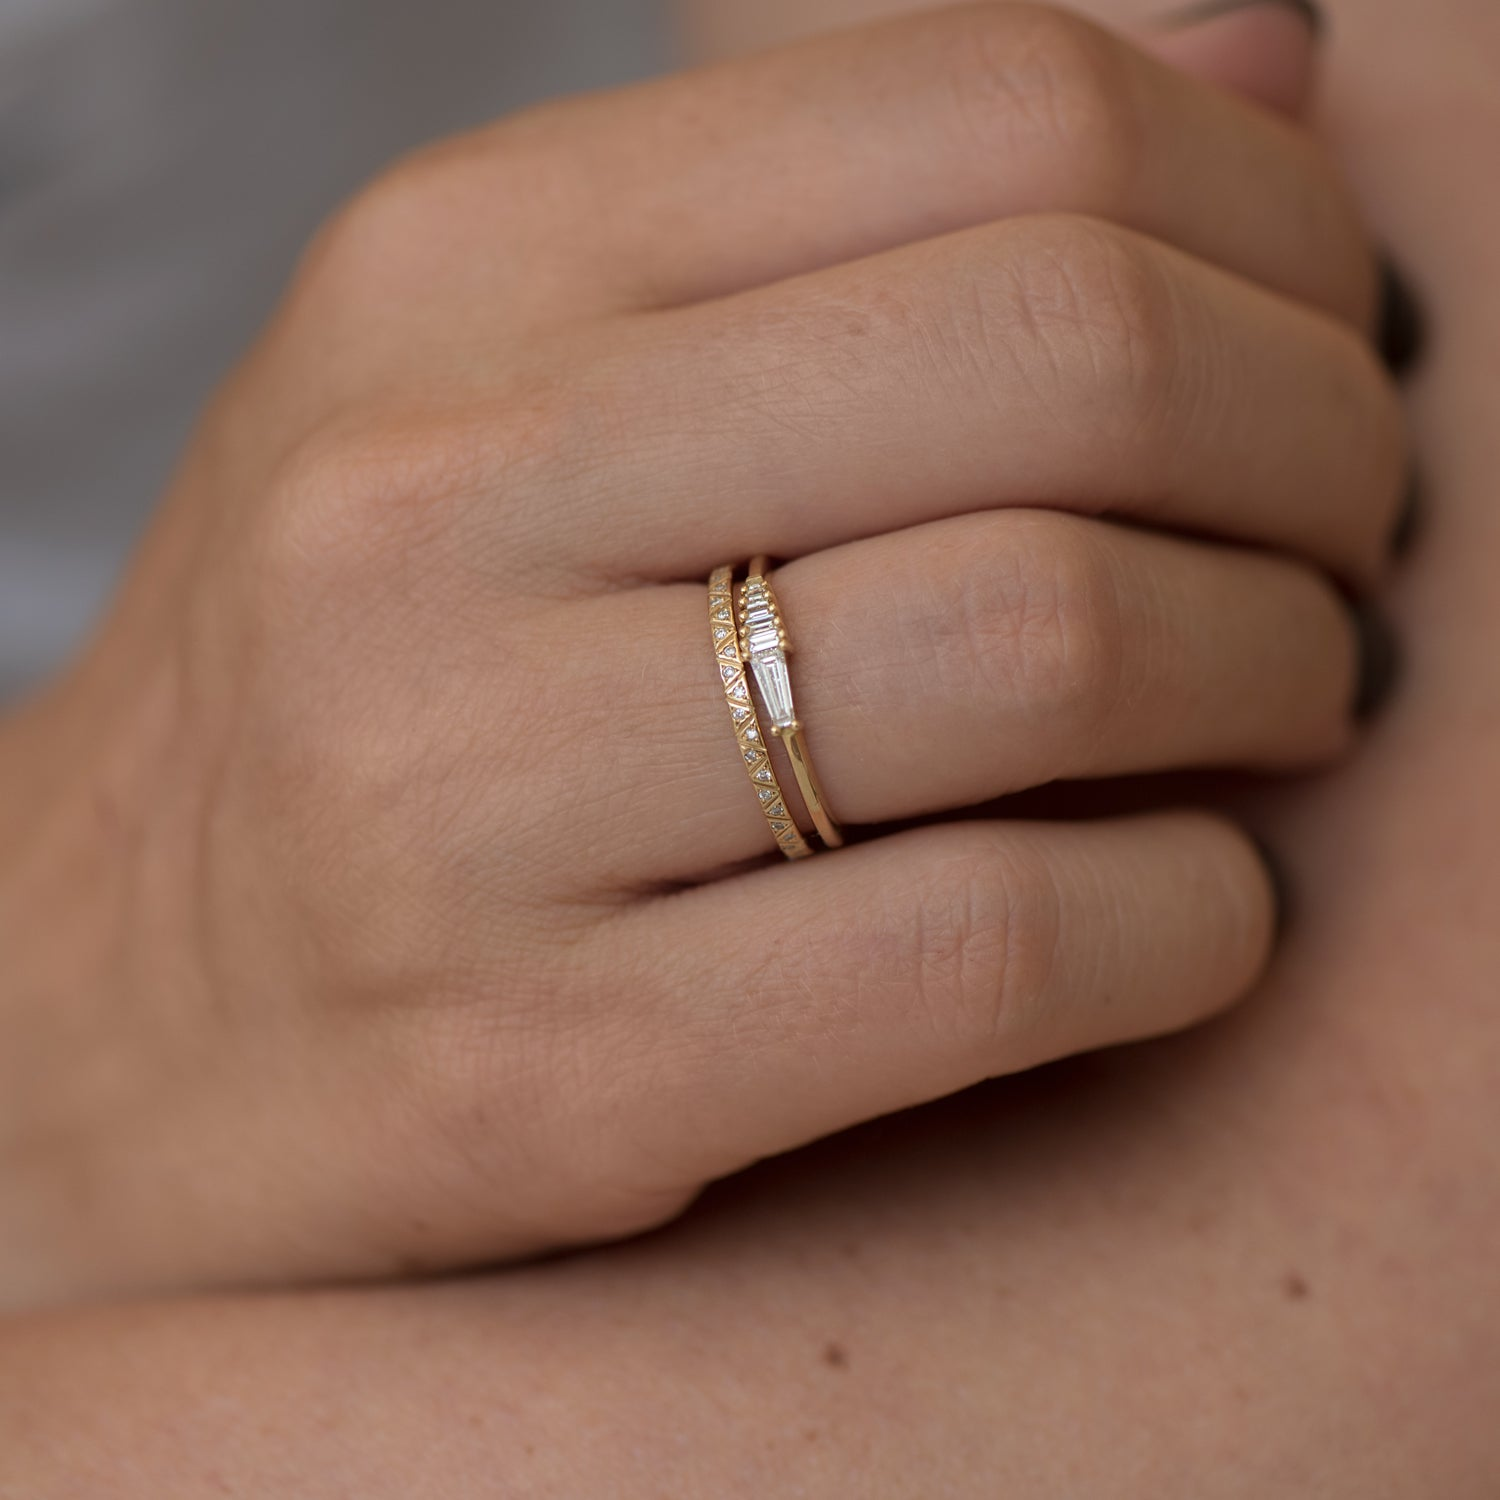 Dainty-Trapeze-Diamond-Ring-Geometric-Cluster-Ring-side-angle-in-set